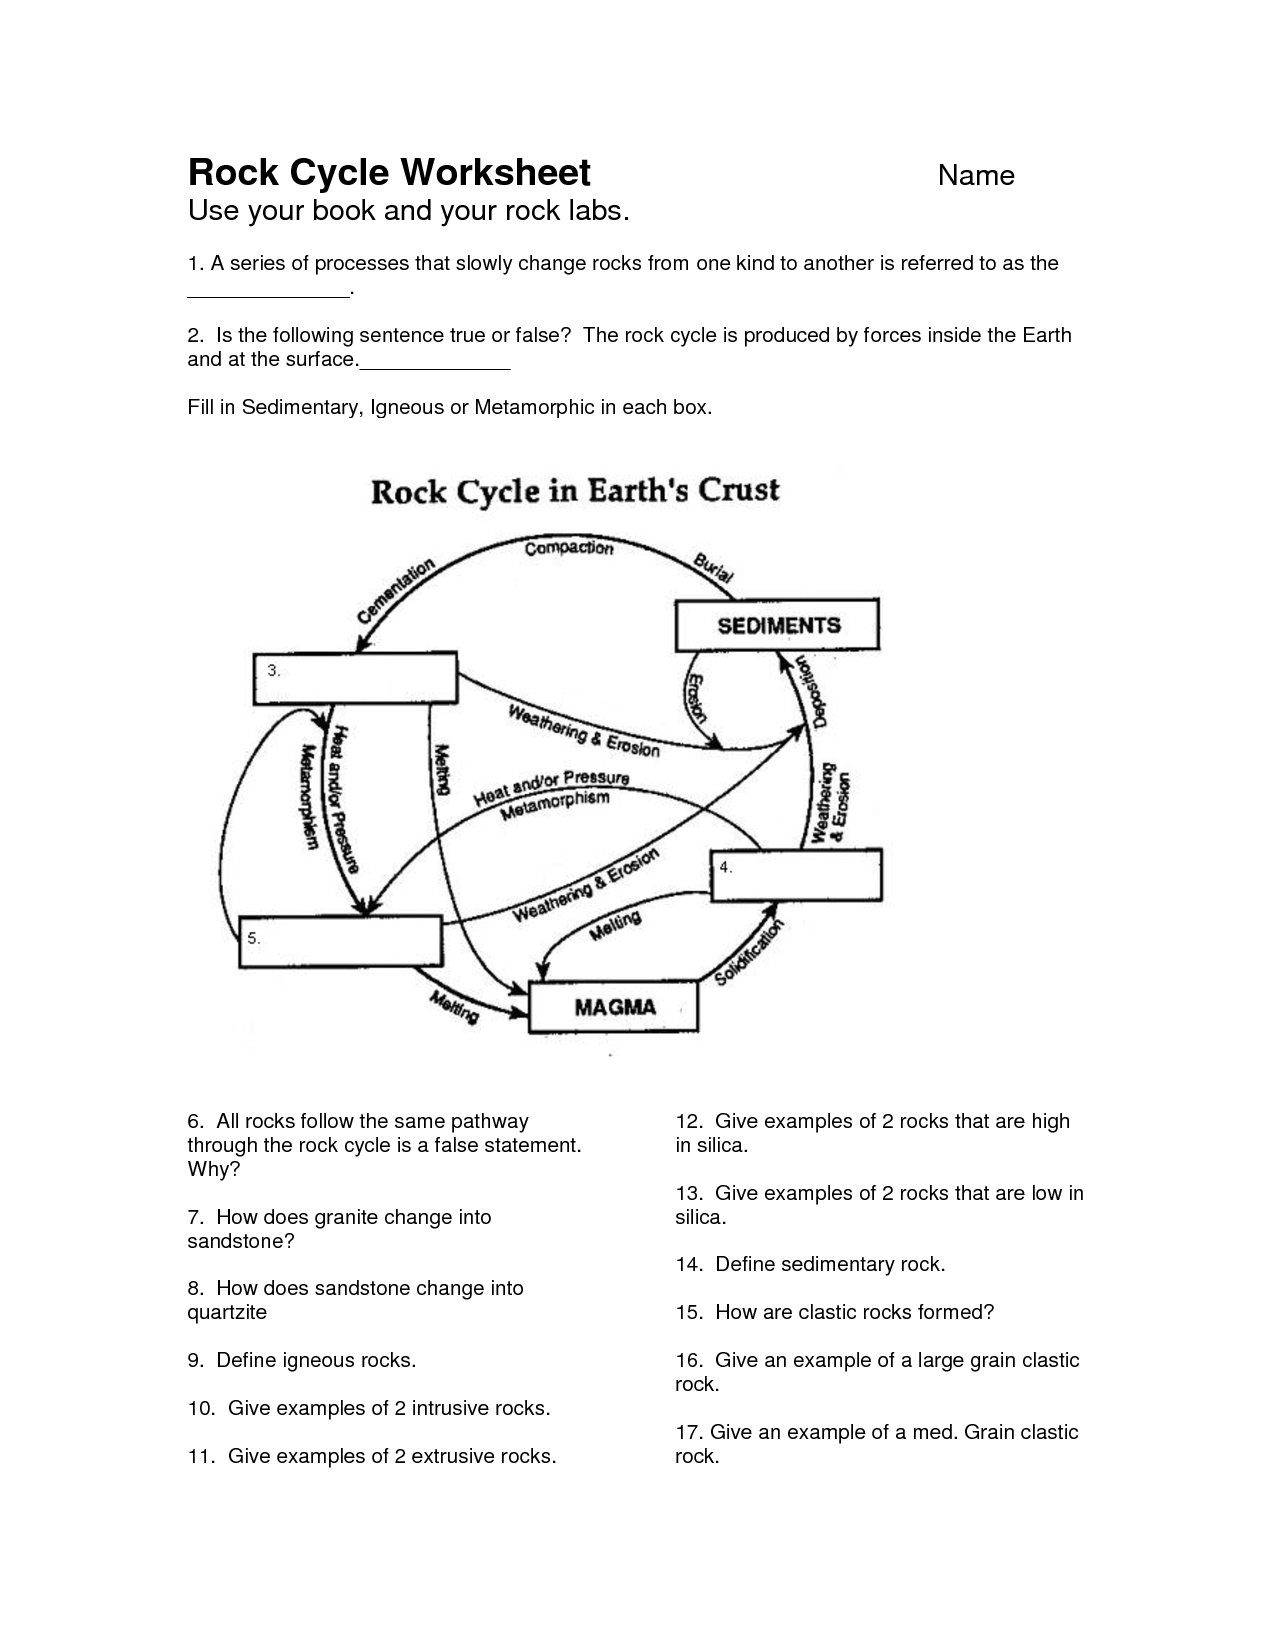 Printables The Rock Cycle Worksheets rock cycle worksheet pichaglobal